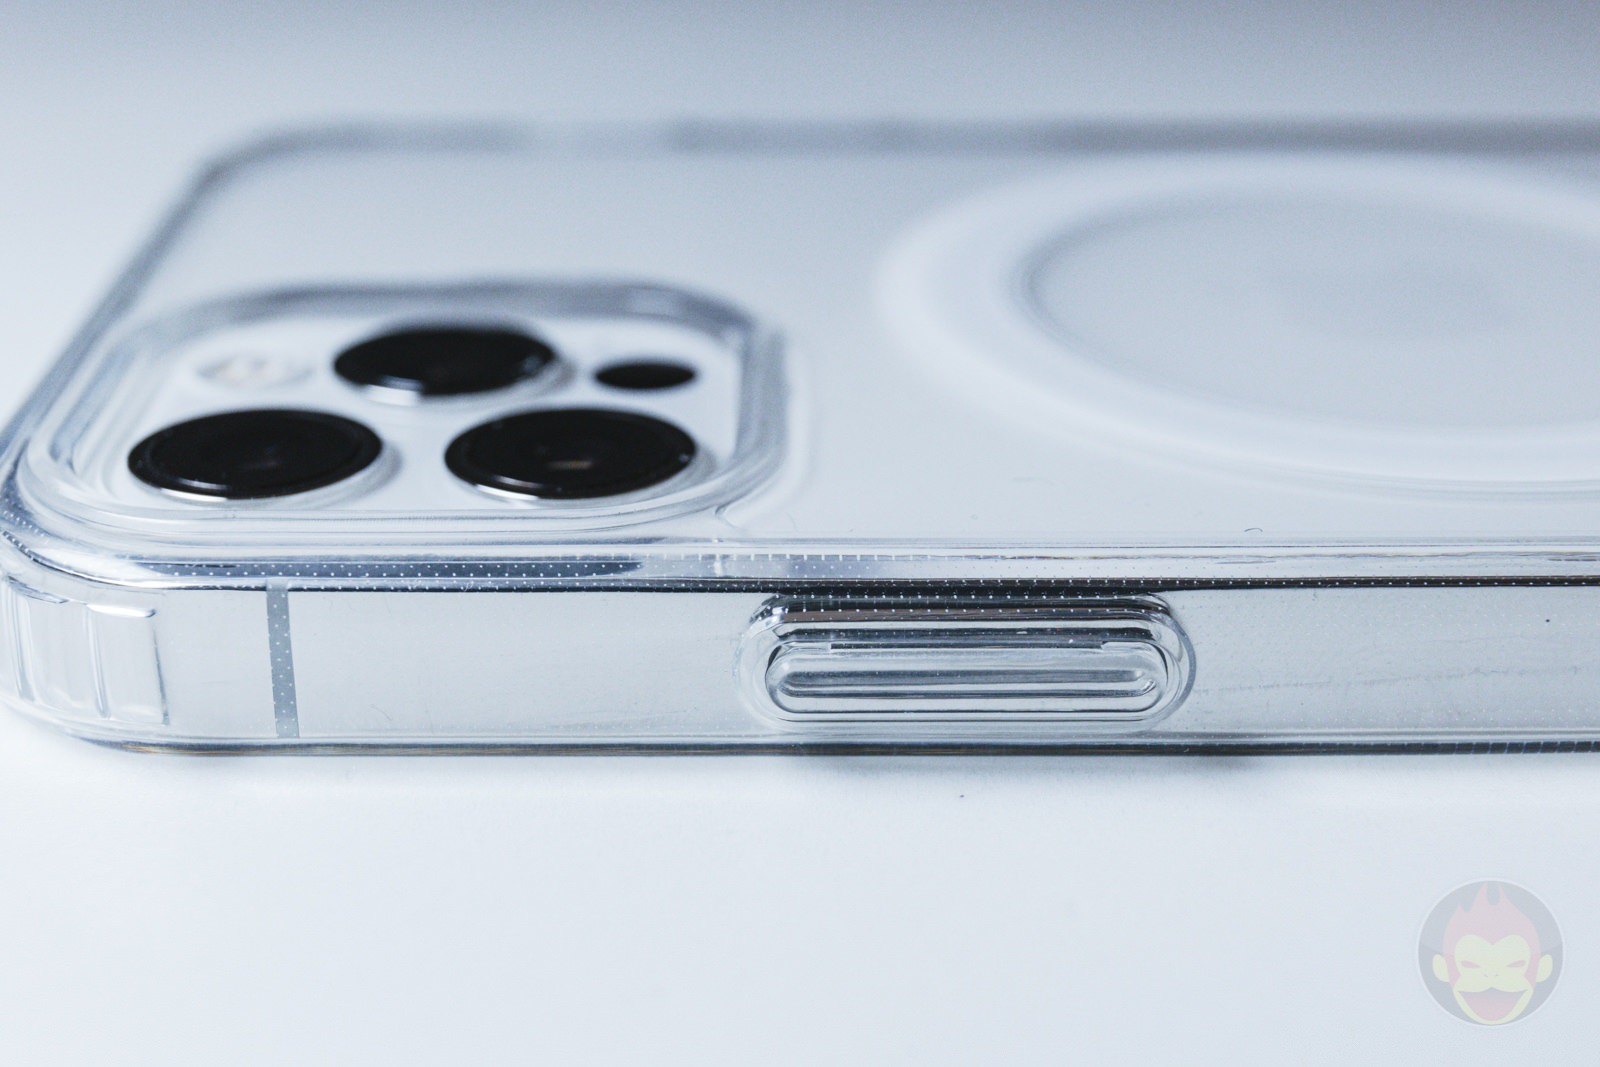 ZNX ZENIX iPhone12Pro Clear MagSafe Case Review 05